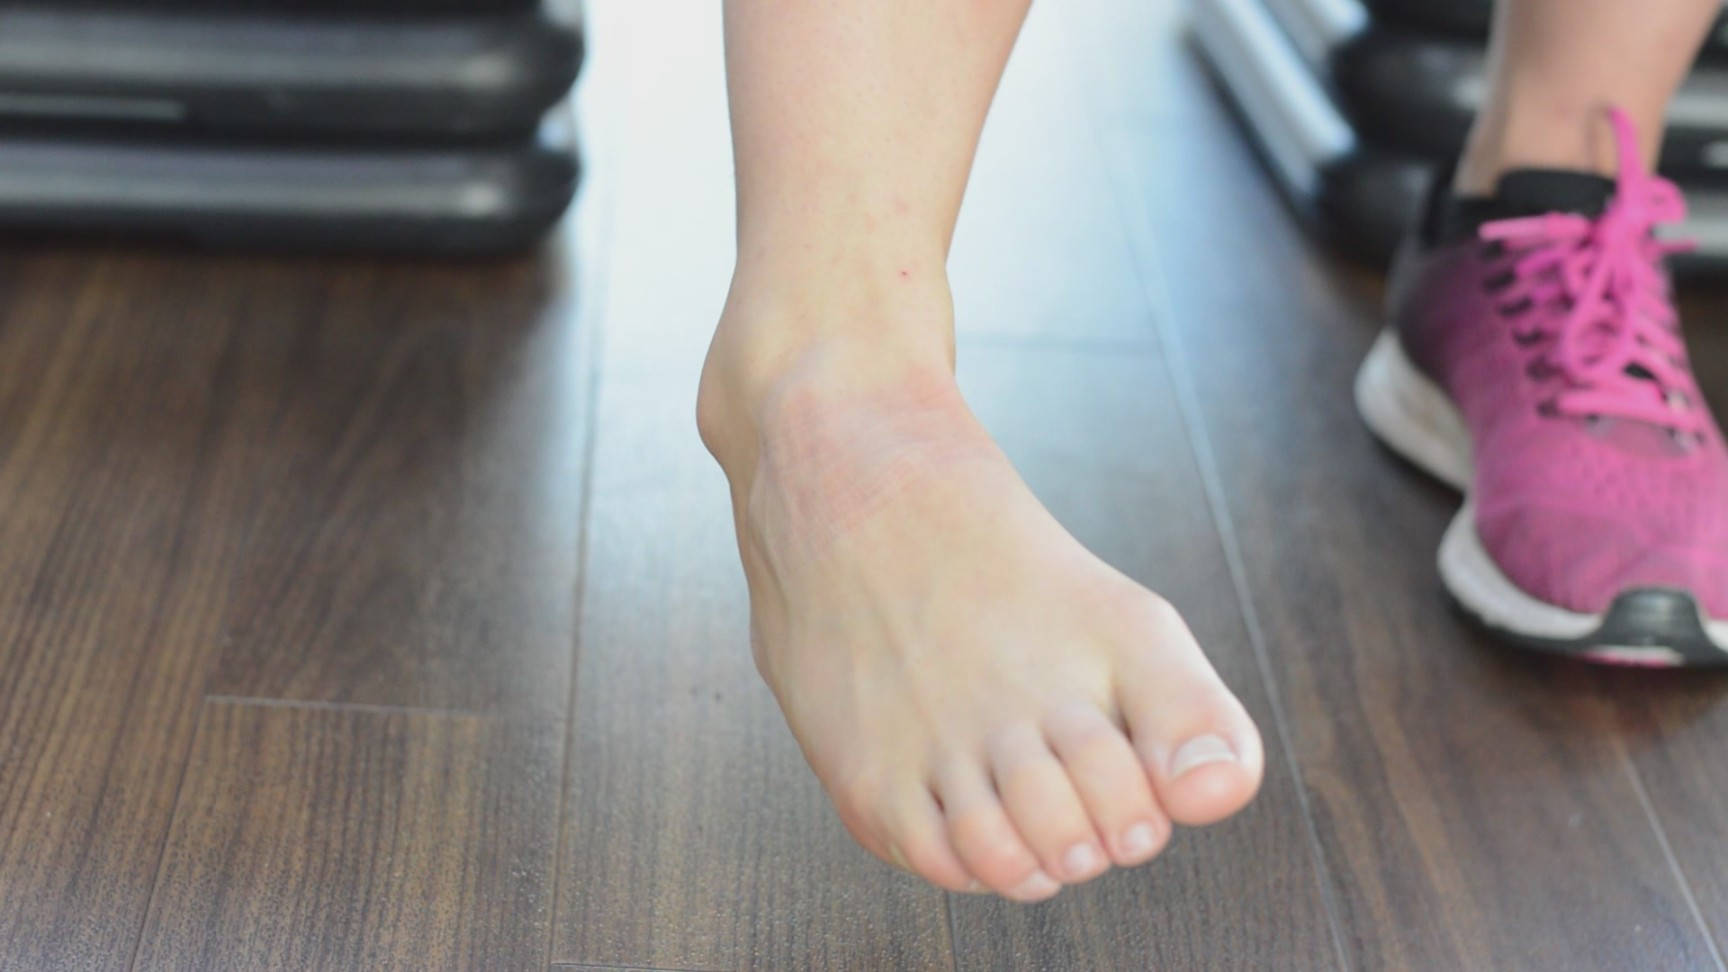 Ankle eversion strengthening technique phase 1